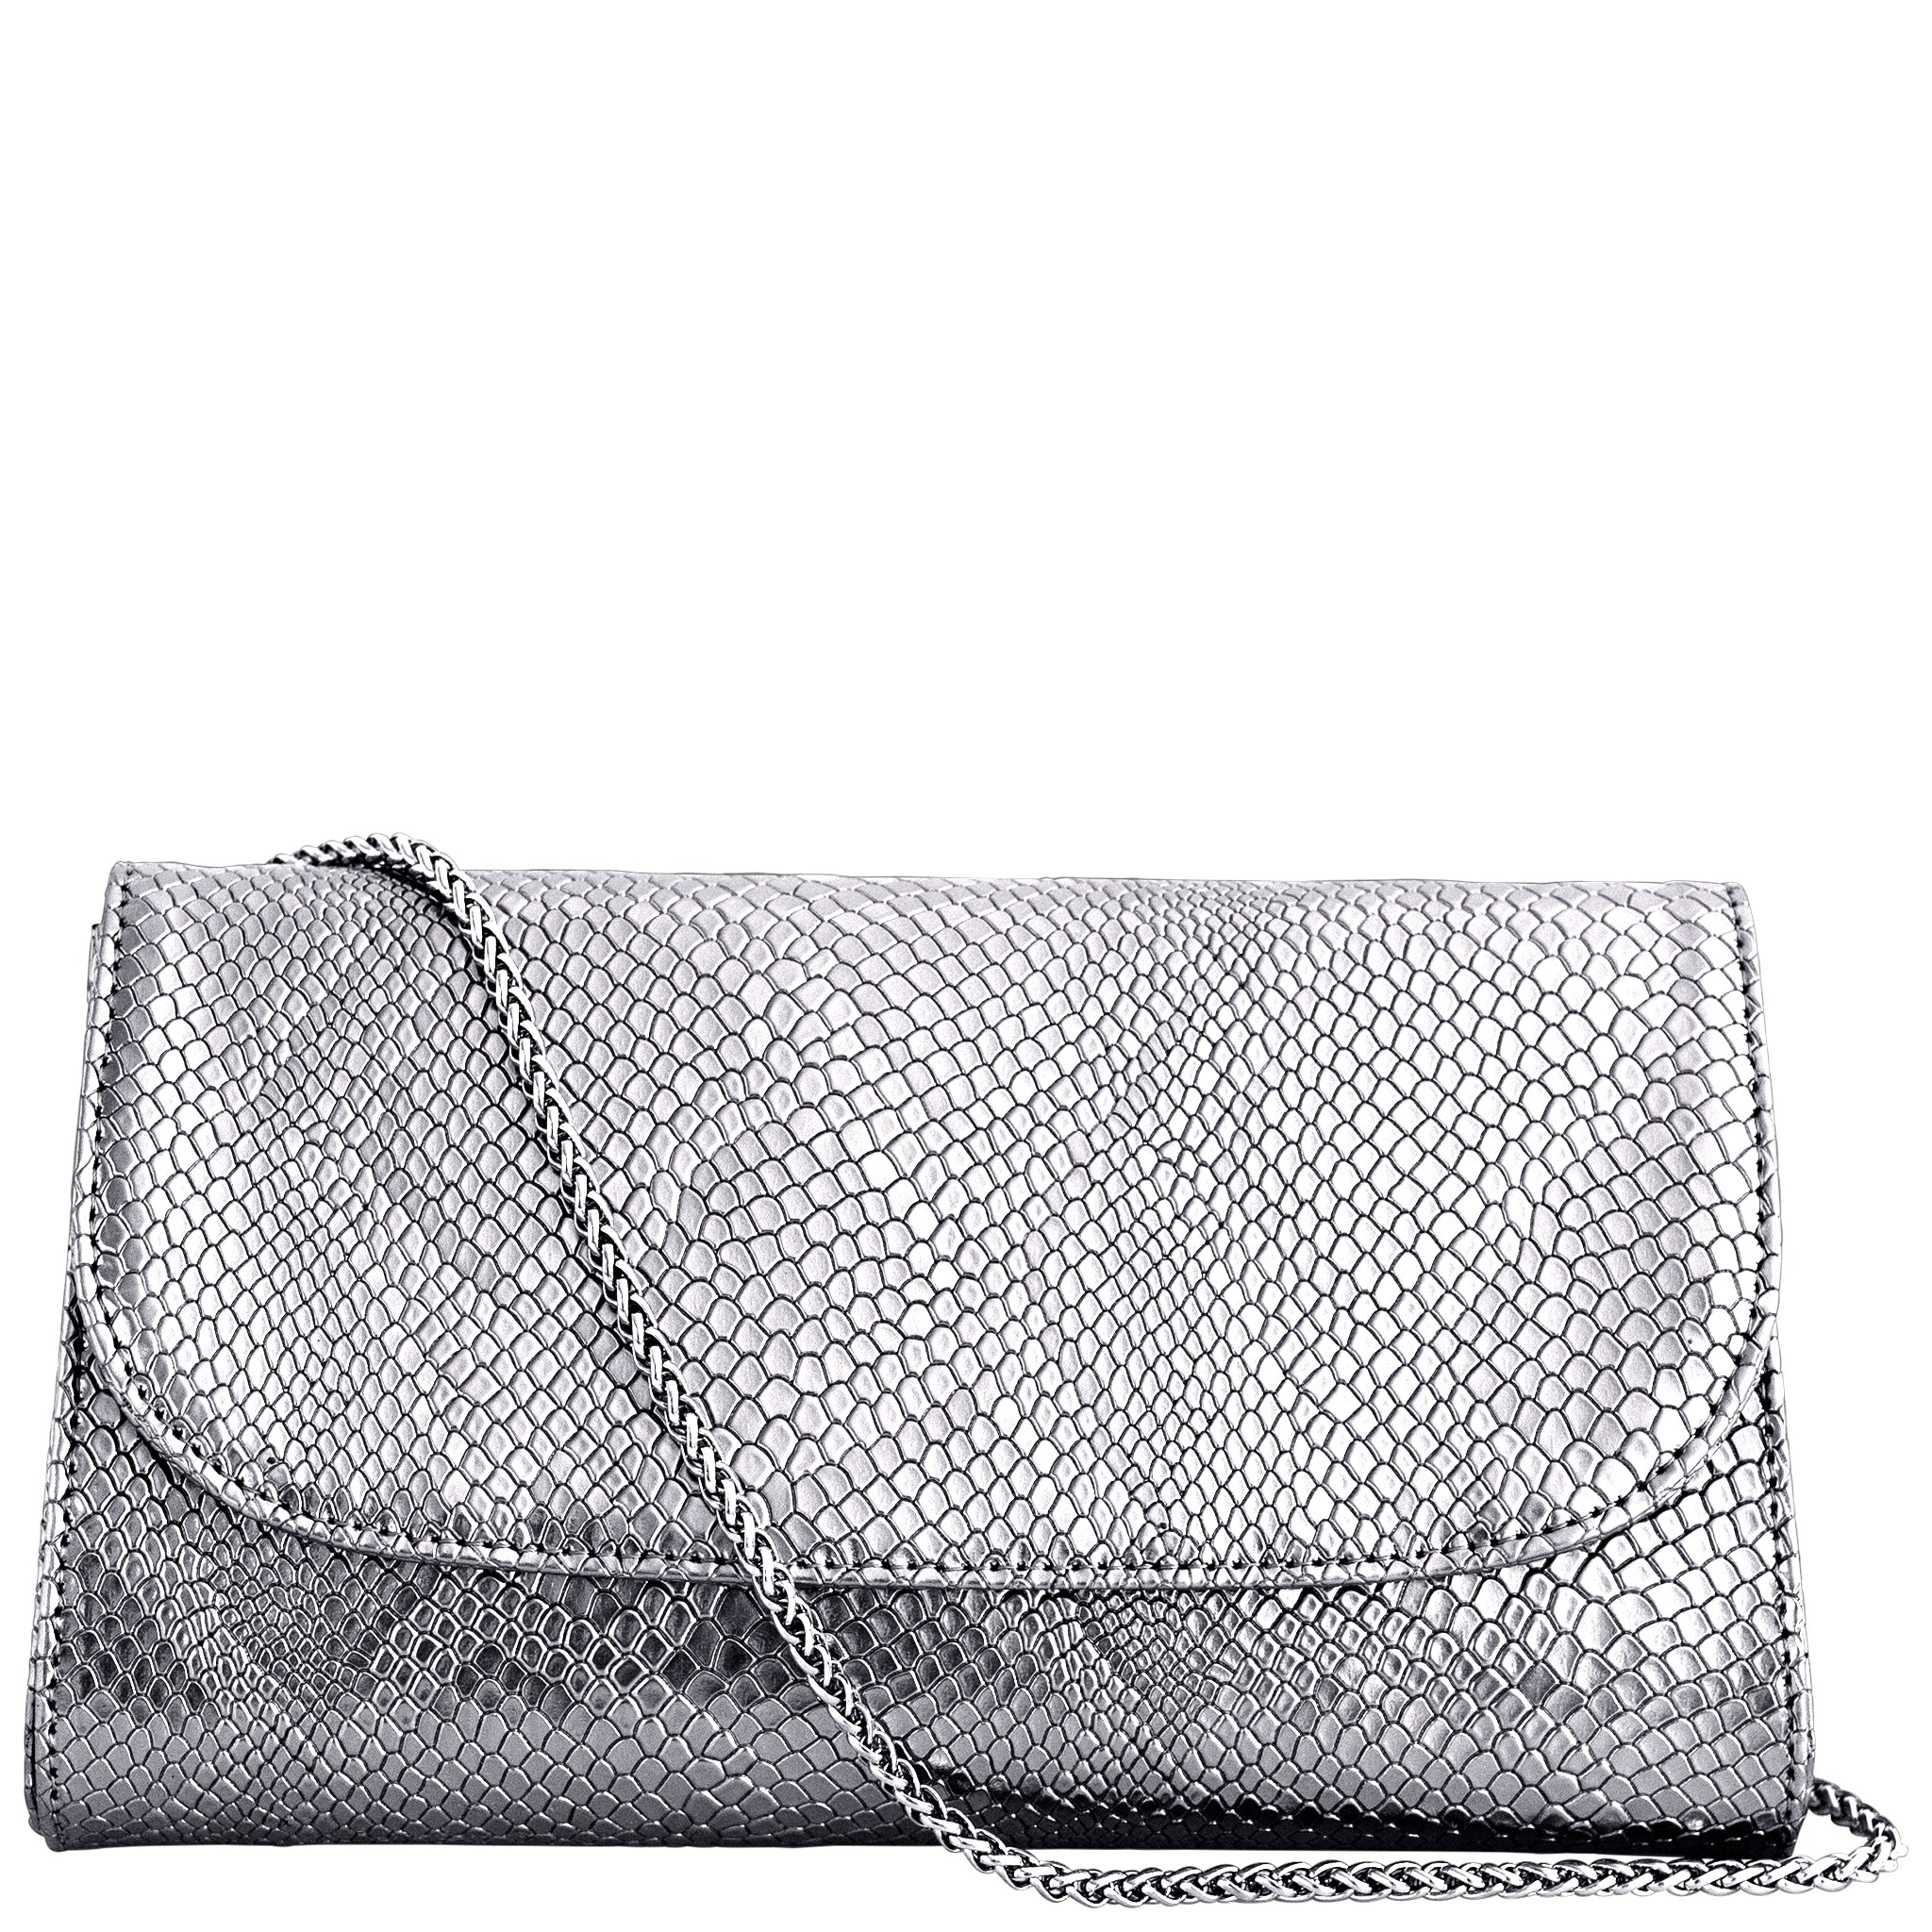 Silver Faux Snakeskin Vegan Leather Purse, Didi, Svala